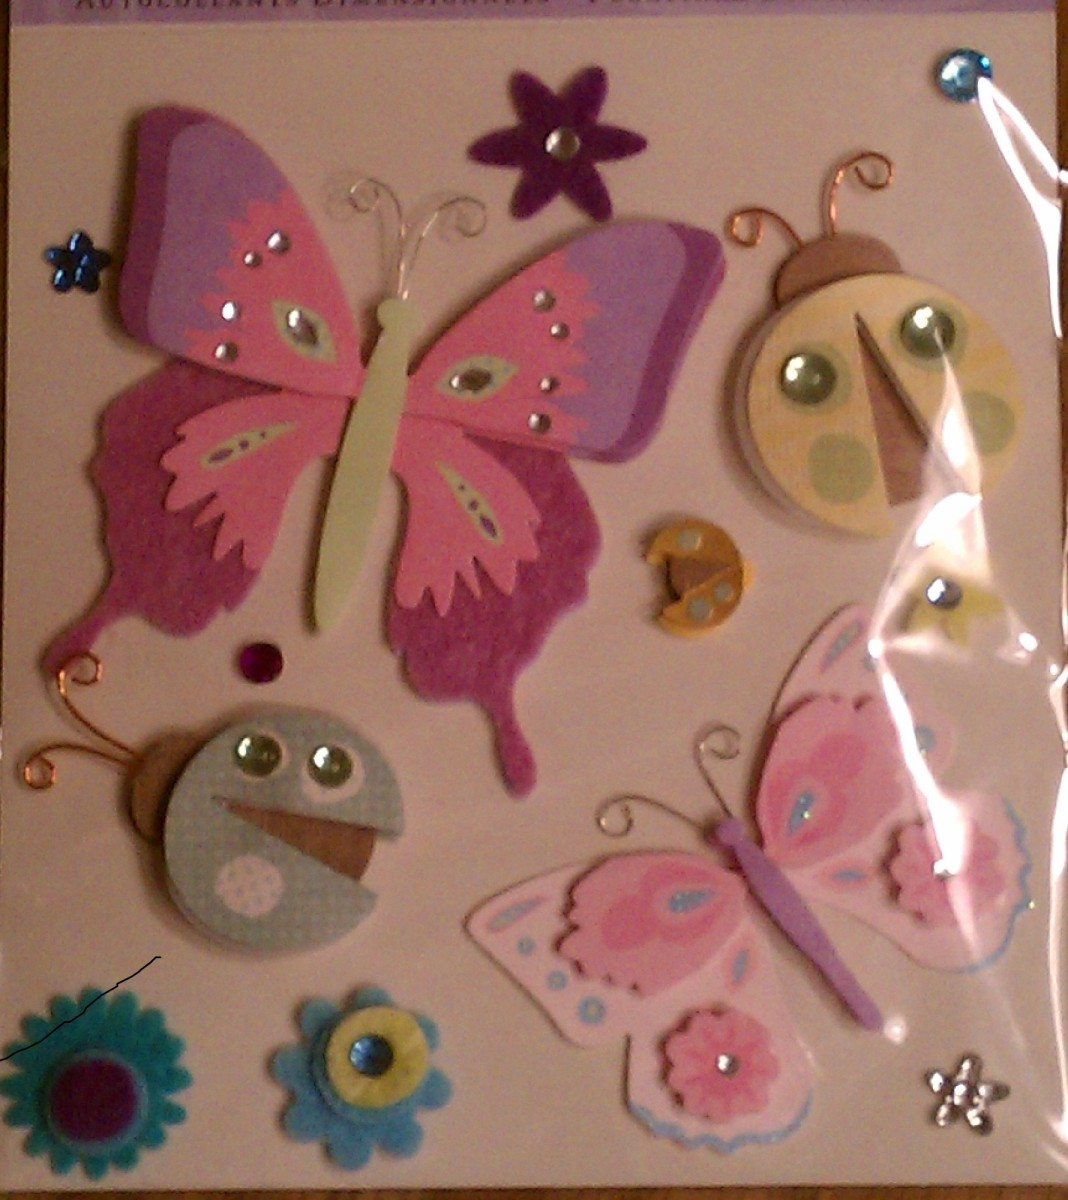 Scrap booking stickers are a great way to customize the cake and the mom can reuse them.